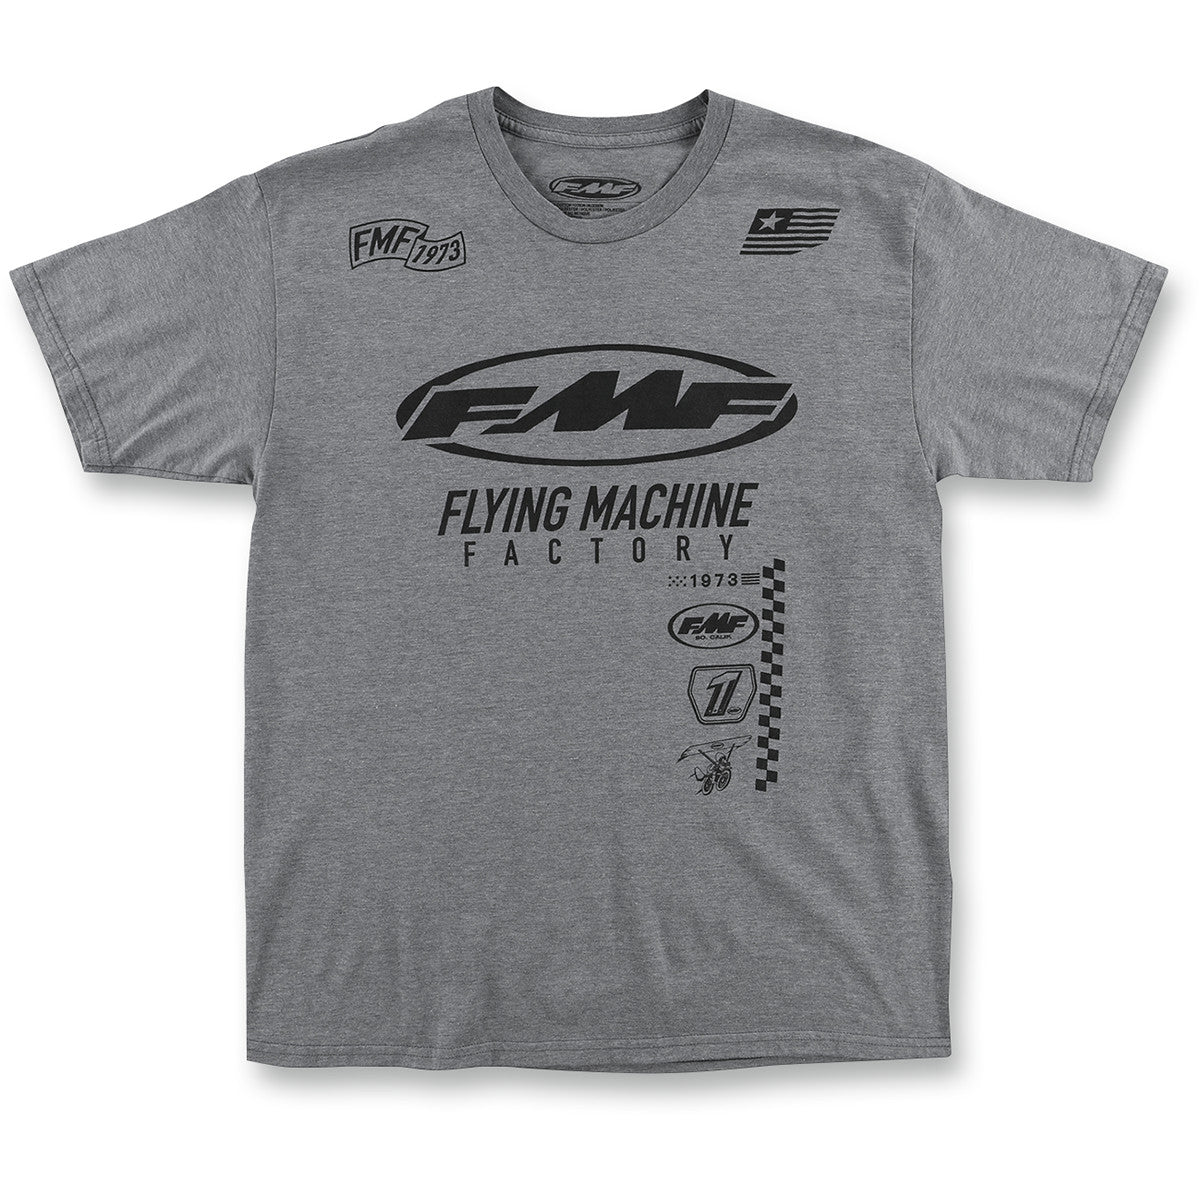 Fmf Apparel T-Shirts